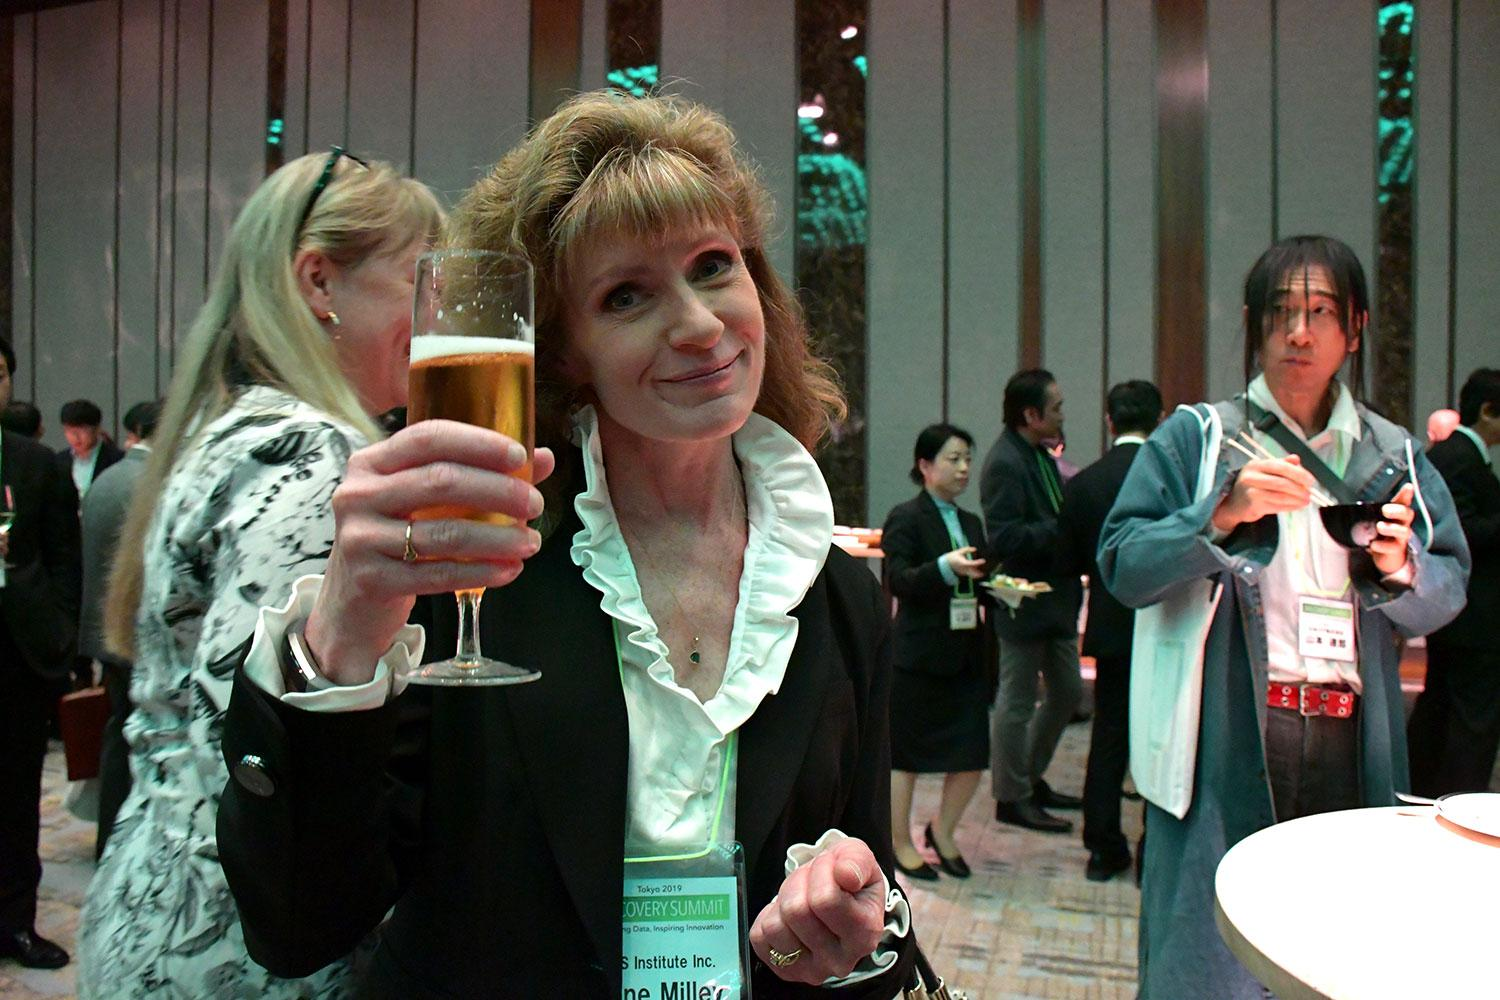 Anne Milley with Beer - Tokyo DS 2019